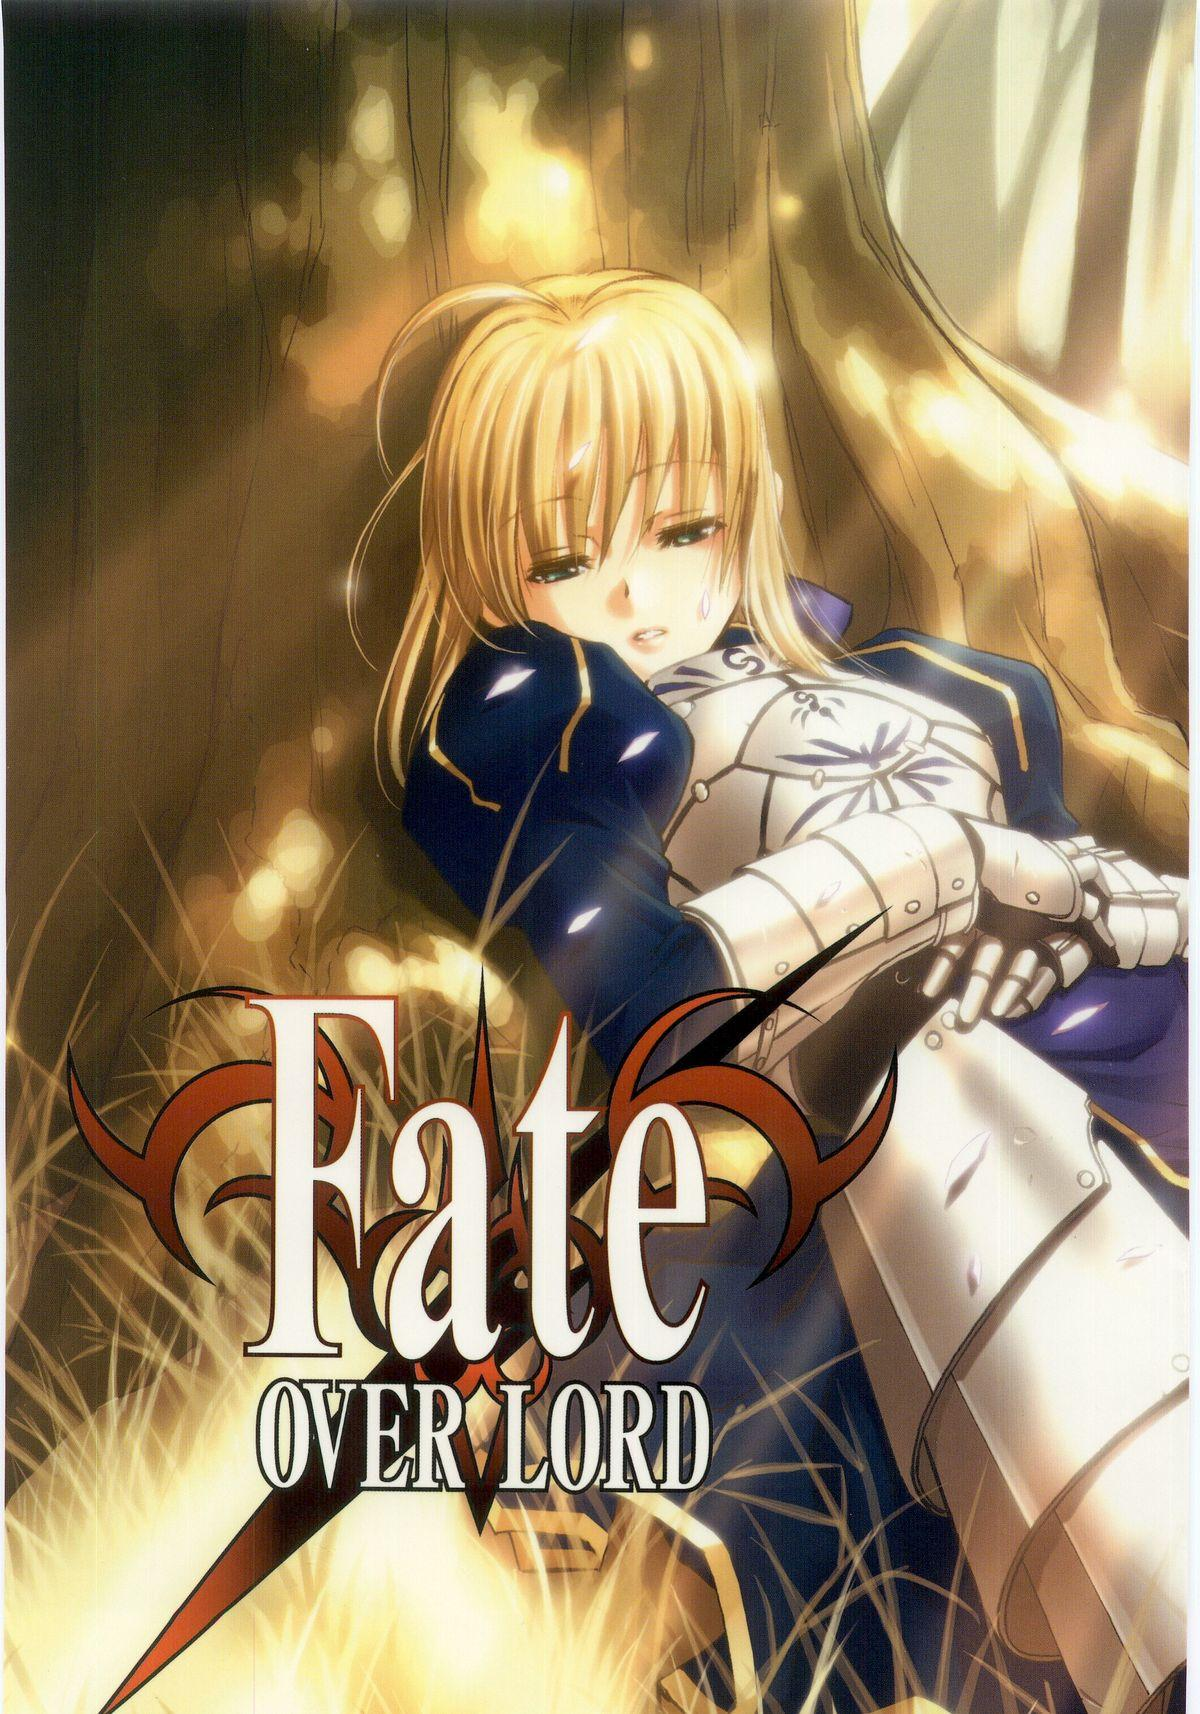 Fate/Over lord 0